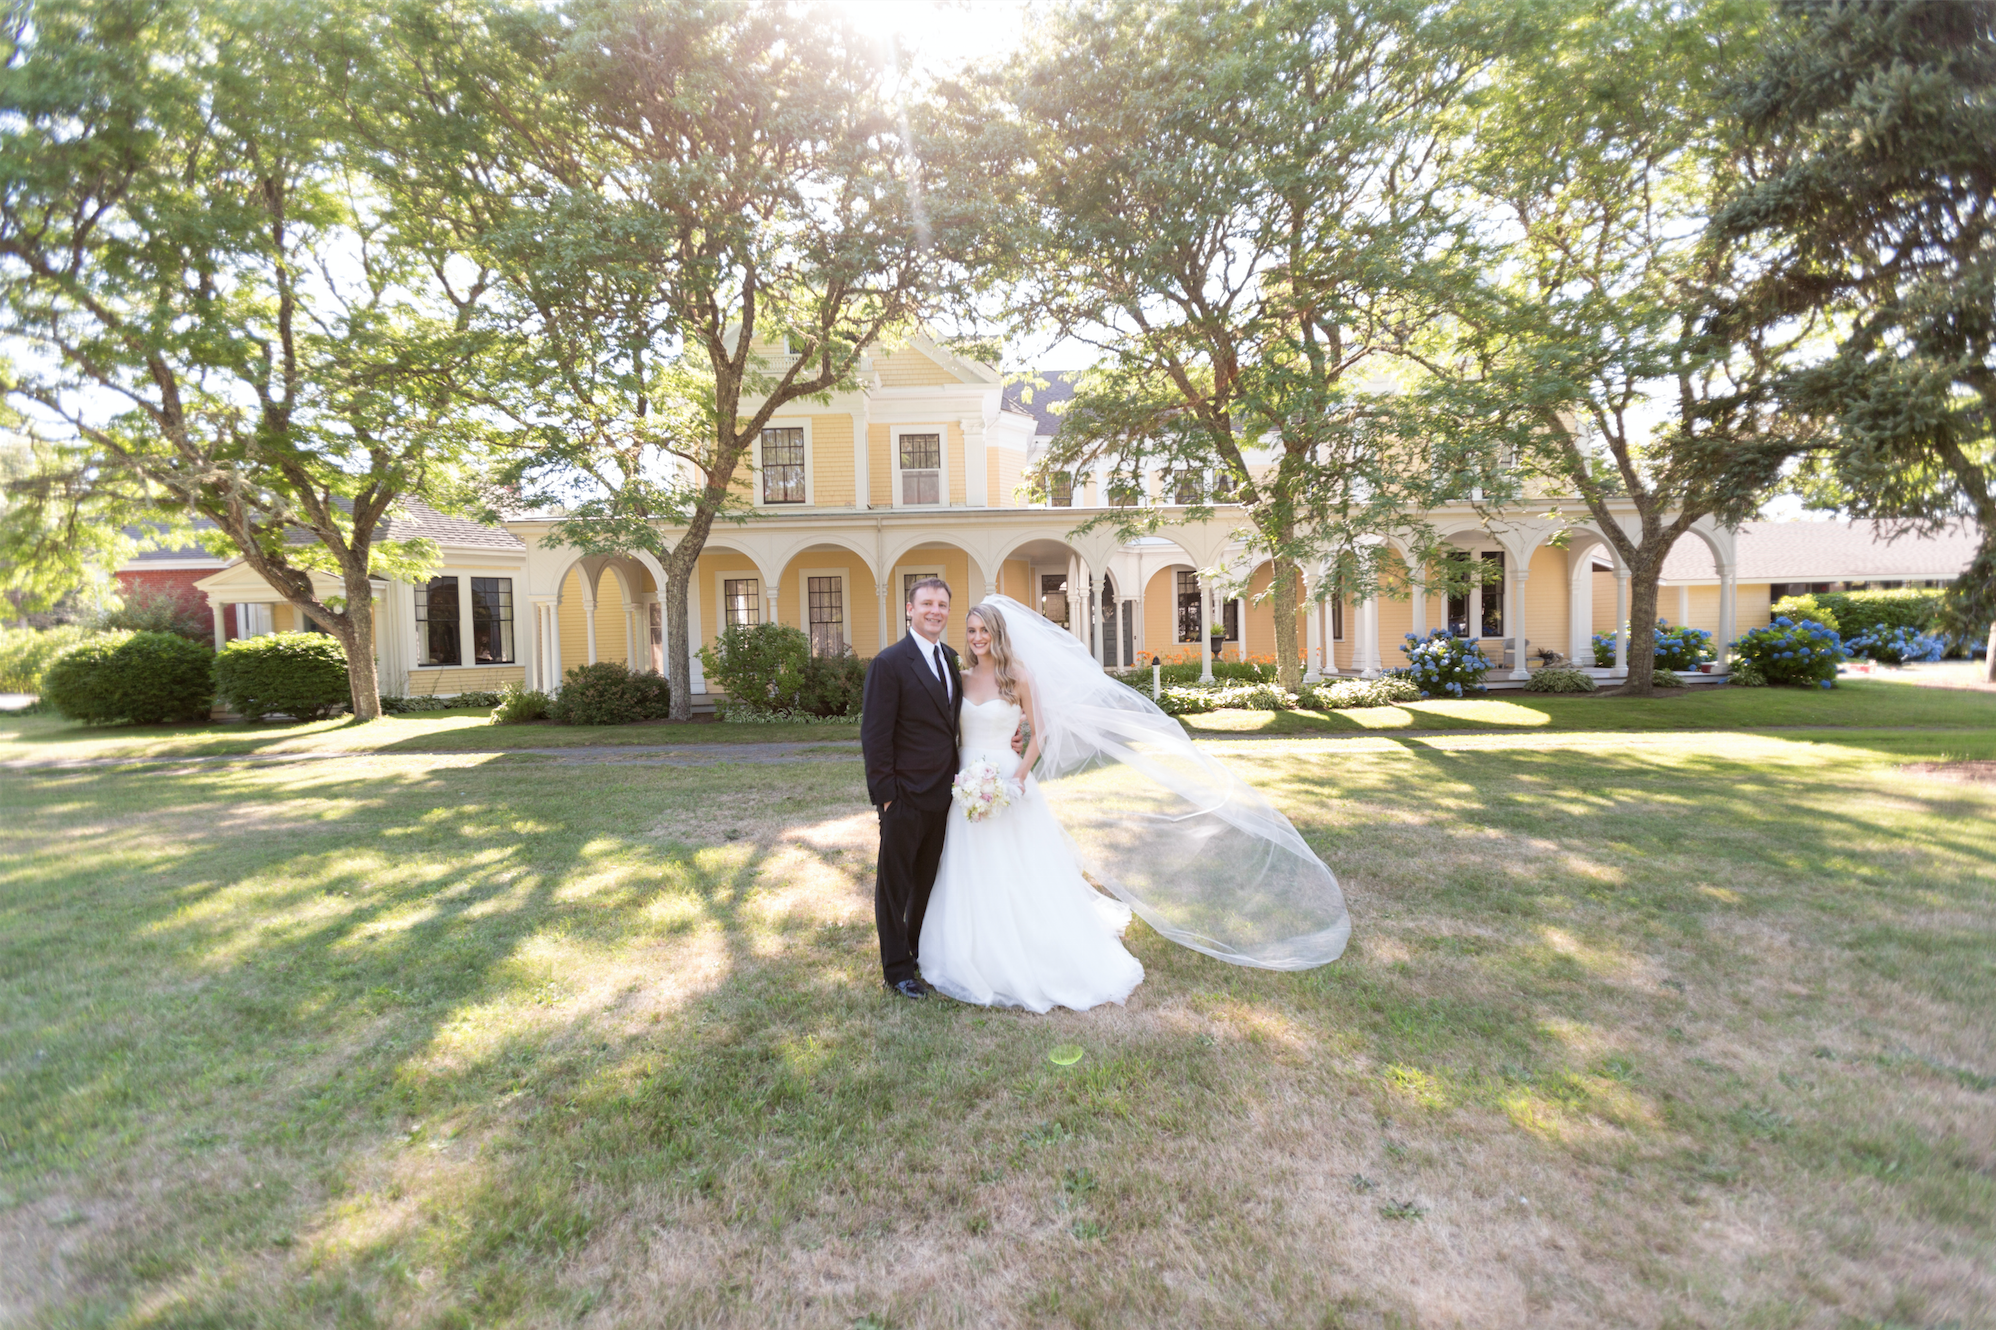 Bride and groom at Crosby Mansion in Brewster